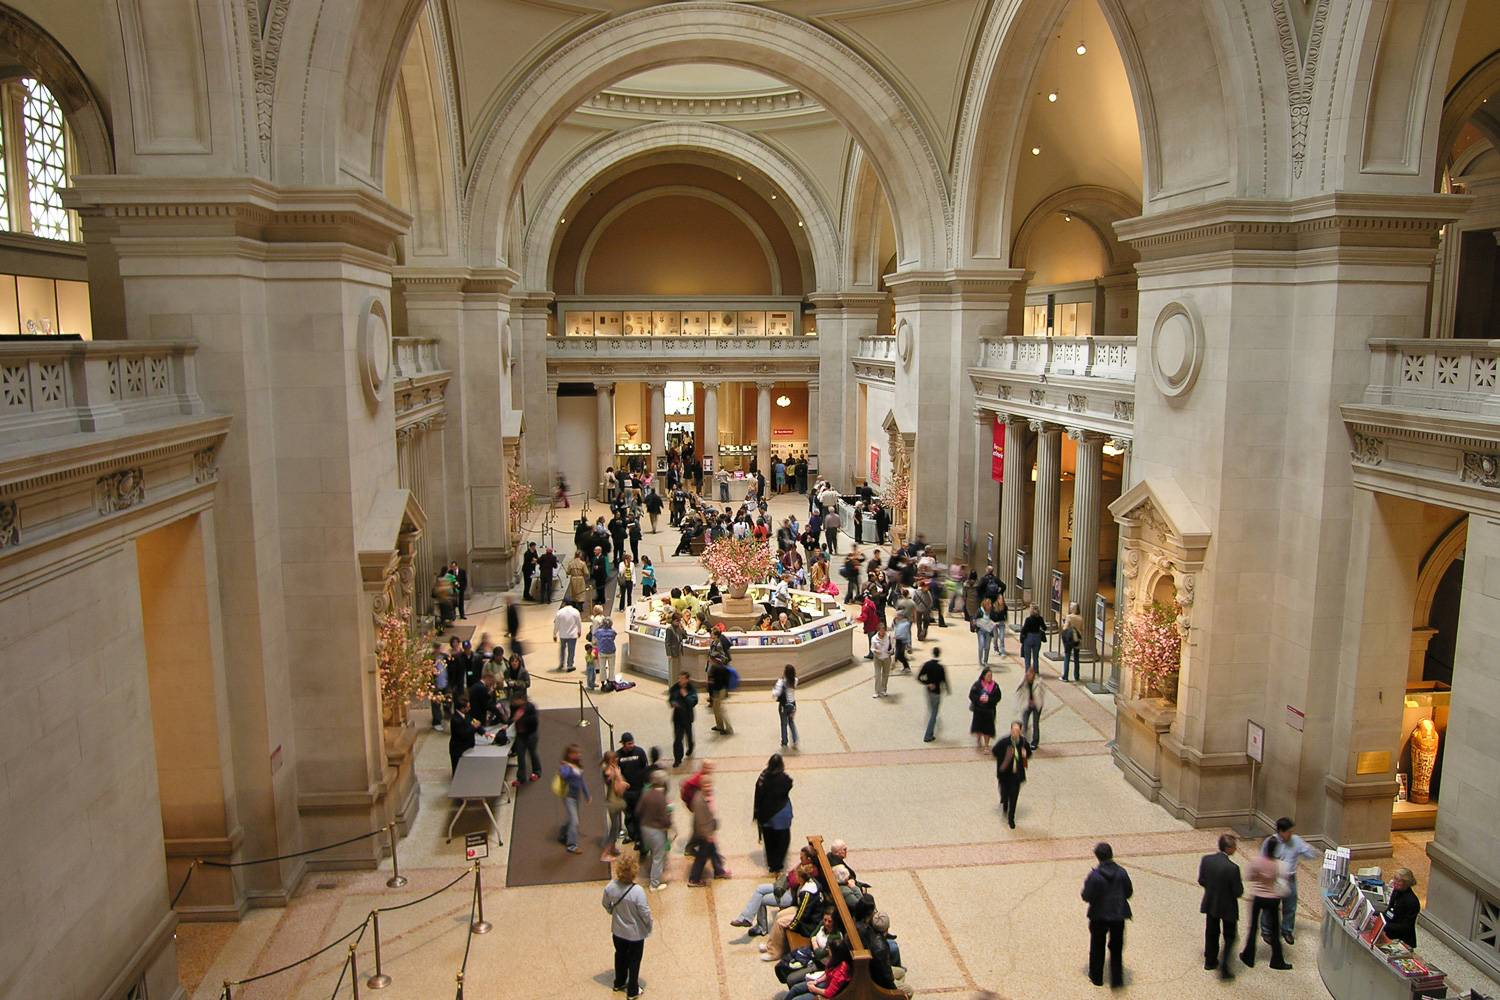 Image of the lobby area of the Metropolitan Museum of Art filled with guests.